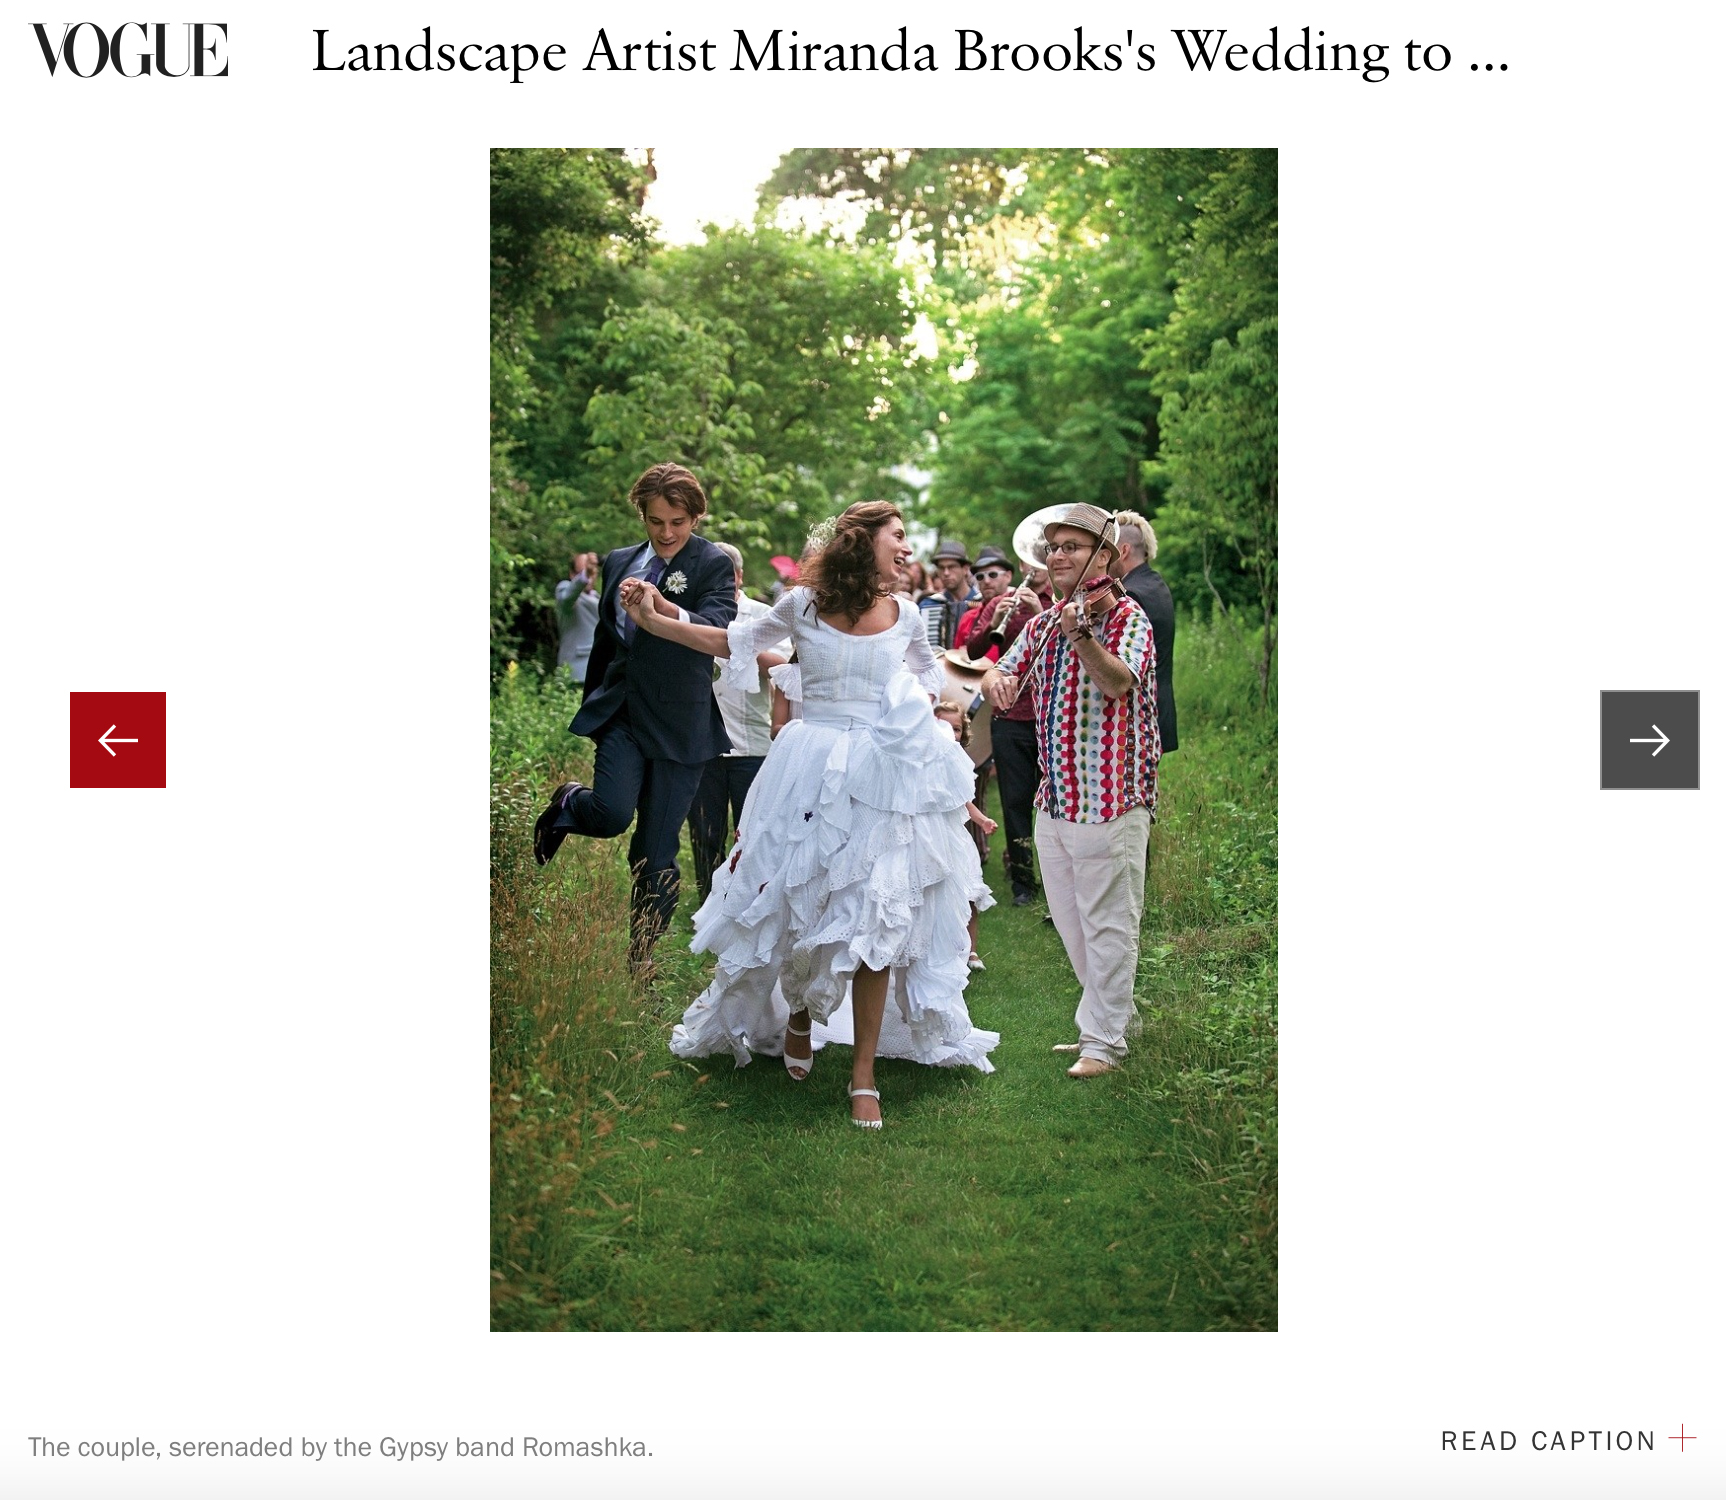 Miranda & Bastien - When Miranda Brooks married Bastien Halard at Anna Wintour's estate, we photographed it for Vogue. You can find that story here.